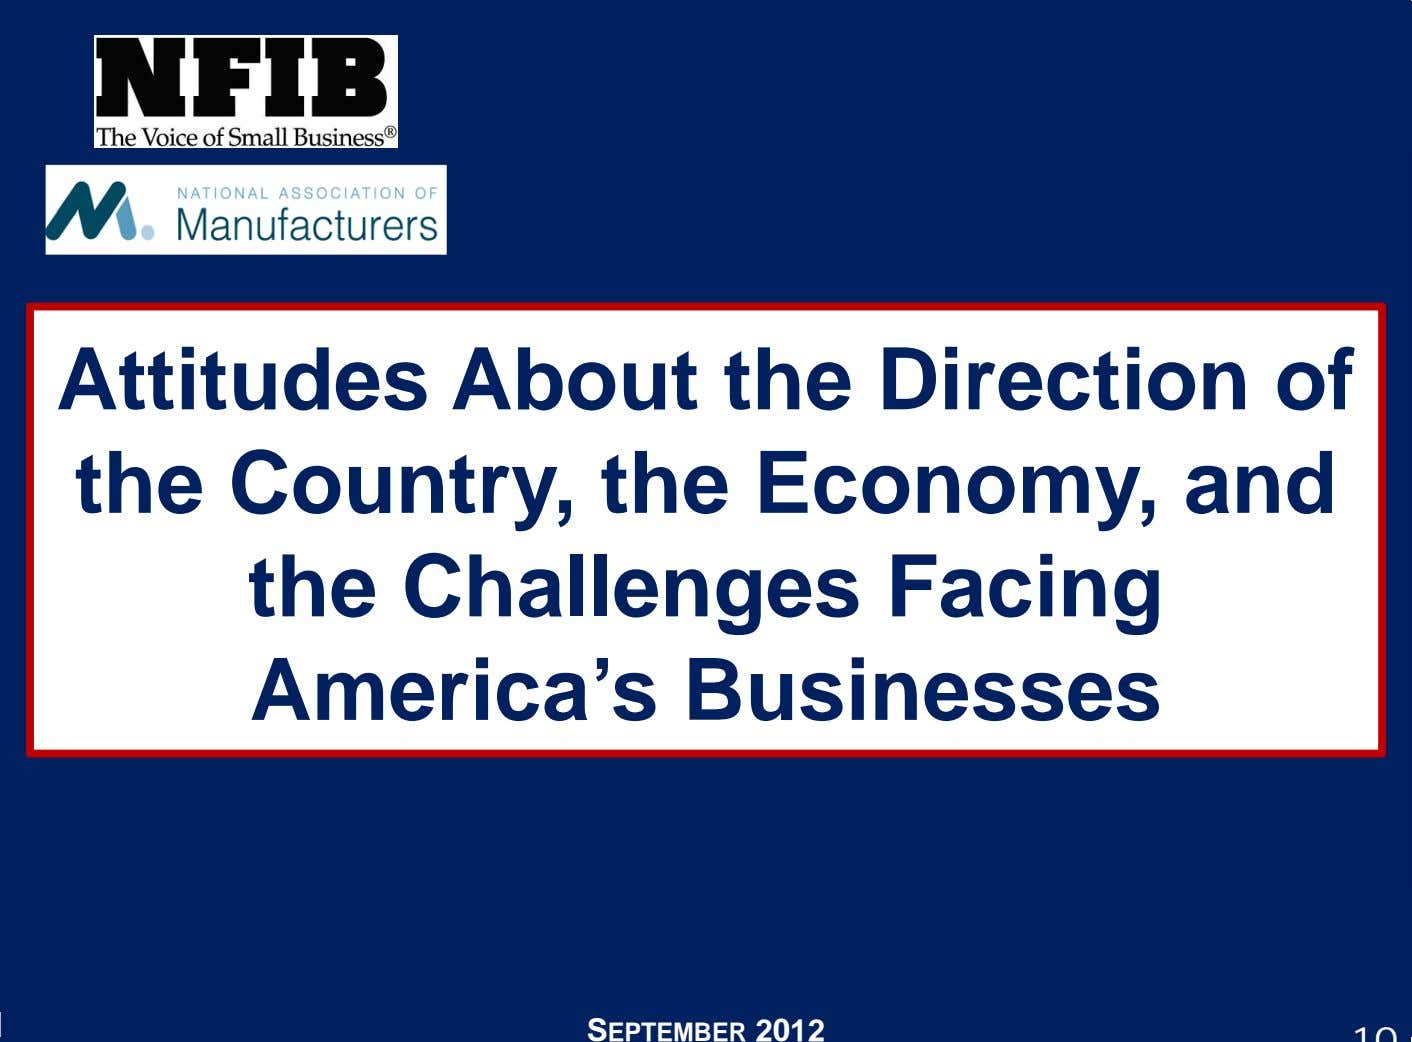 Attitudes About the Direction of the Country, the Economy, and the Challenges Facing America's Businesses